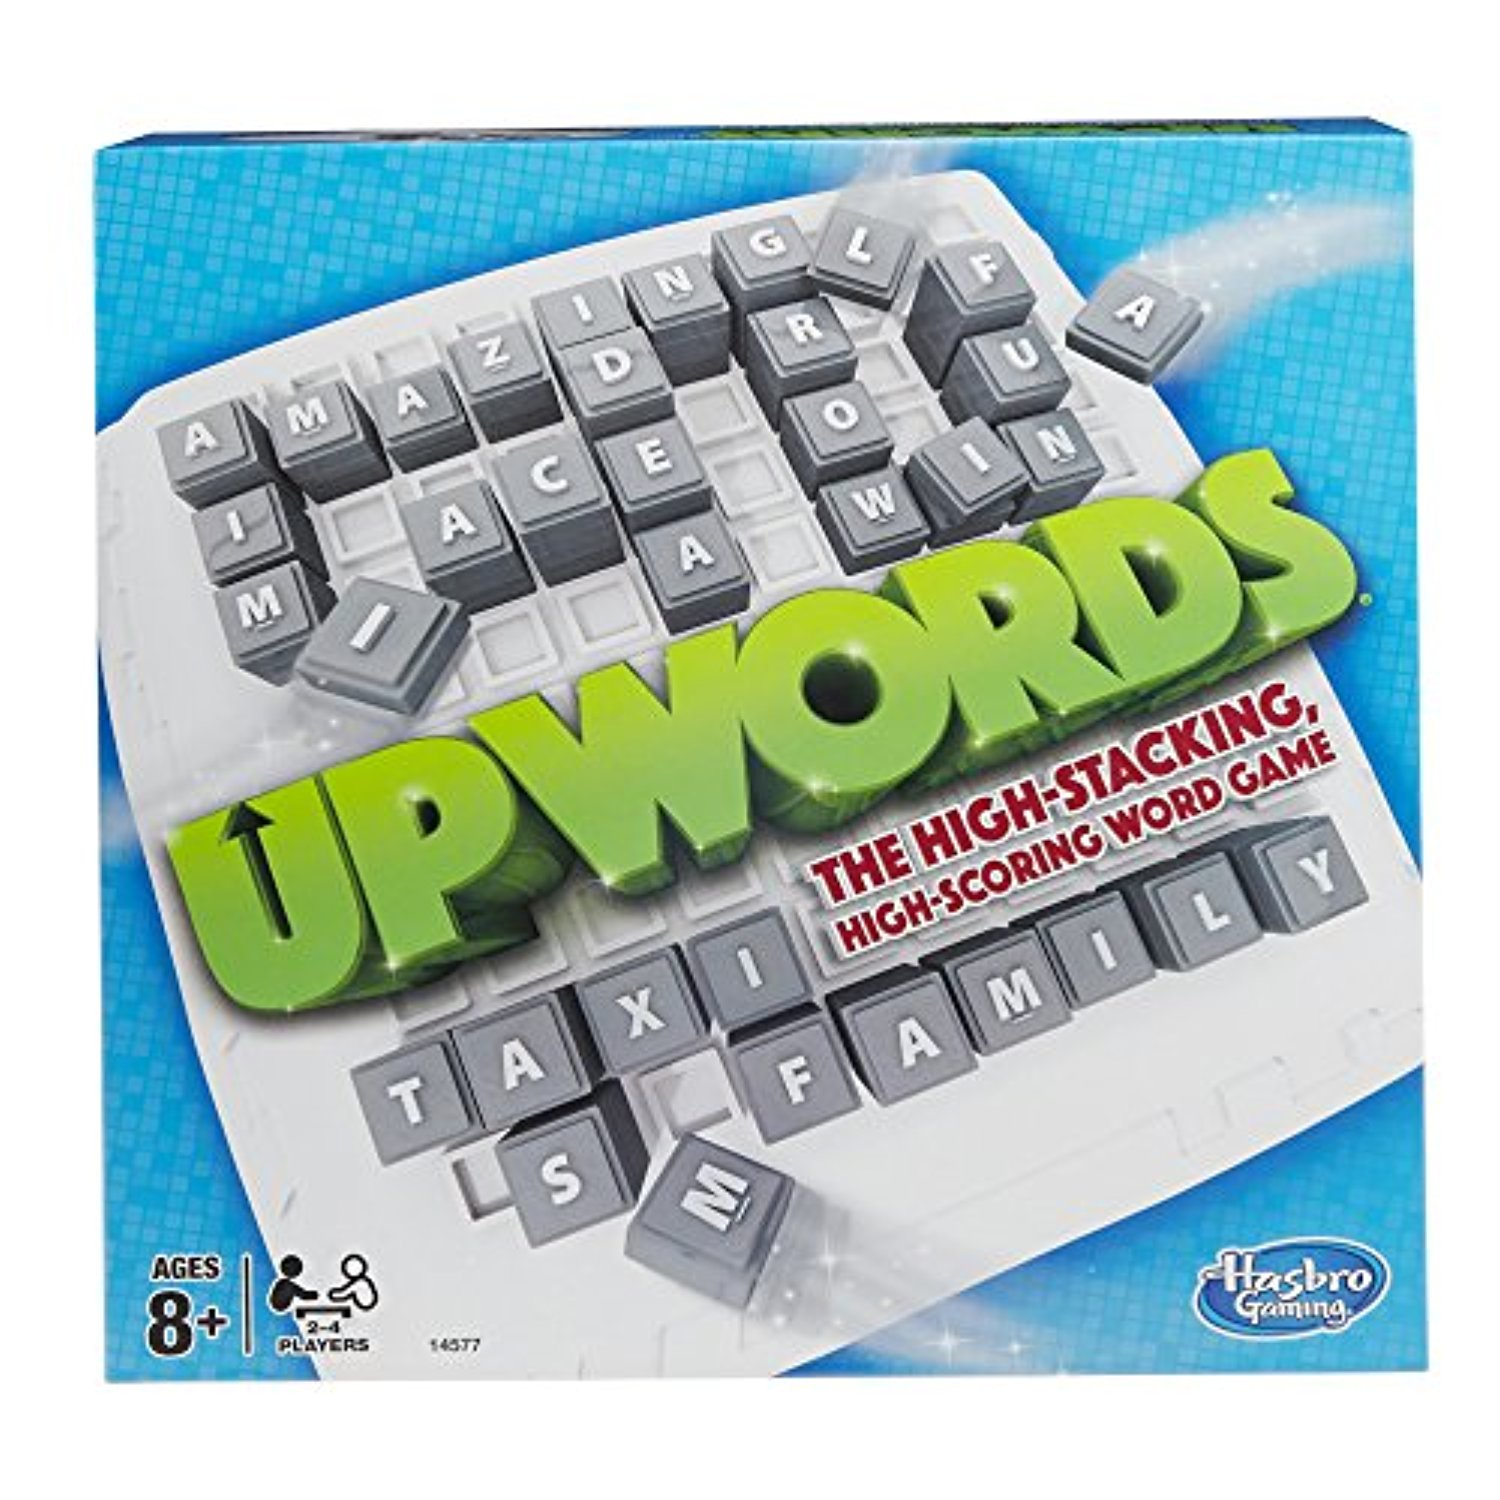 UPWORDS Family Fun Strategy Fast Paced Interactive Board Game Hasbro HSB14577 by Hasbro